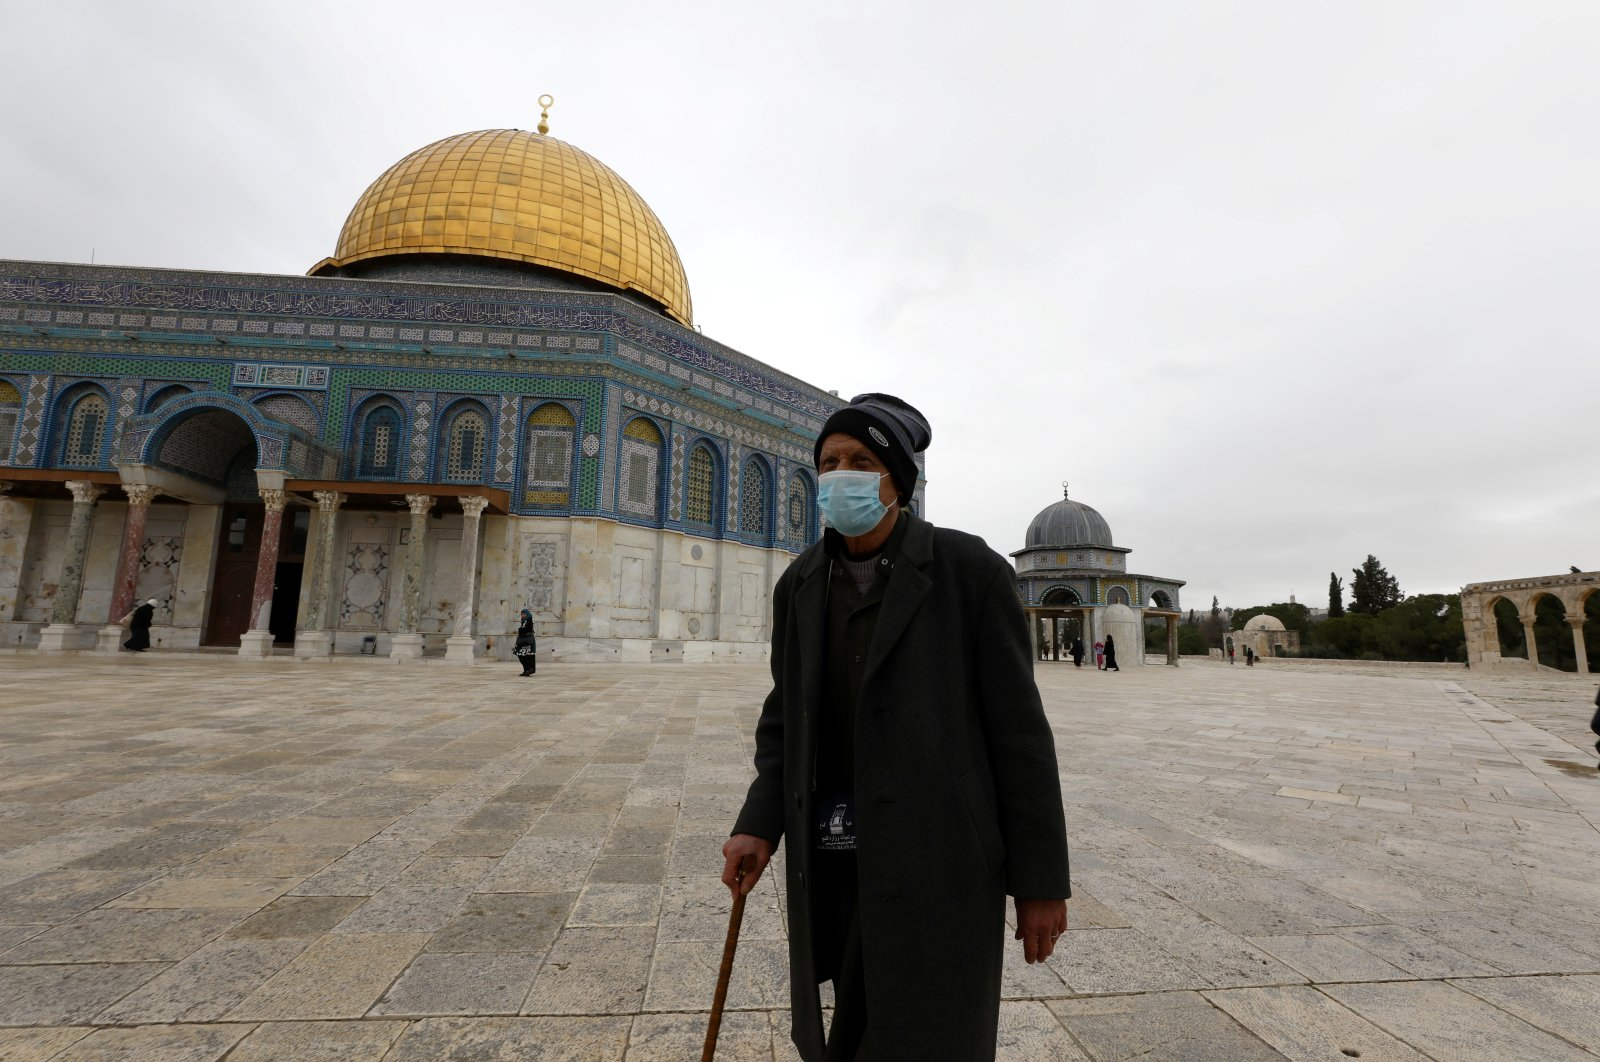 A worshipper walks in the compound known to Muslims as Noble Sanctuary, Jerusalem's Old City, March 13, 2020. (REUTERS Photo)